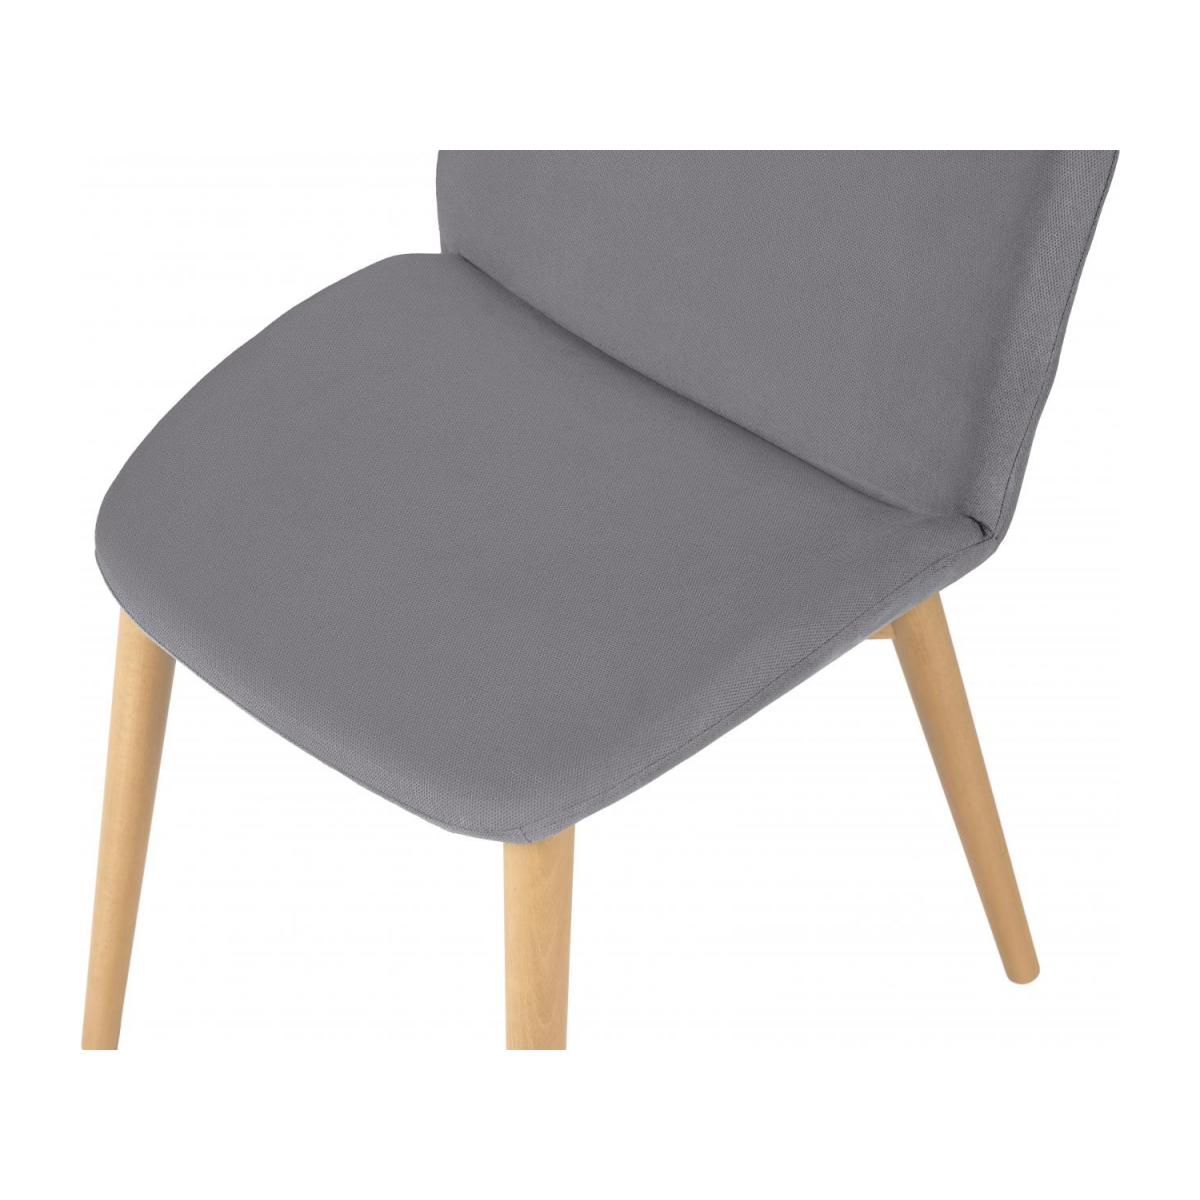 Chair with grey fabric cover and beech wood legs n°5